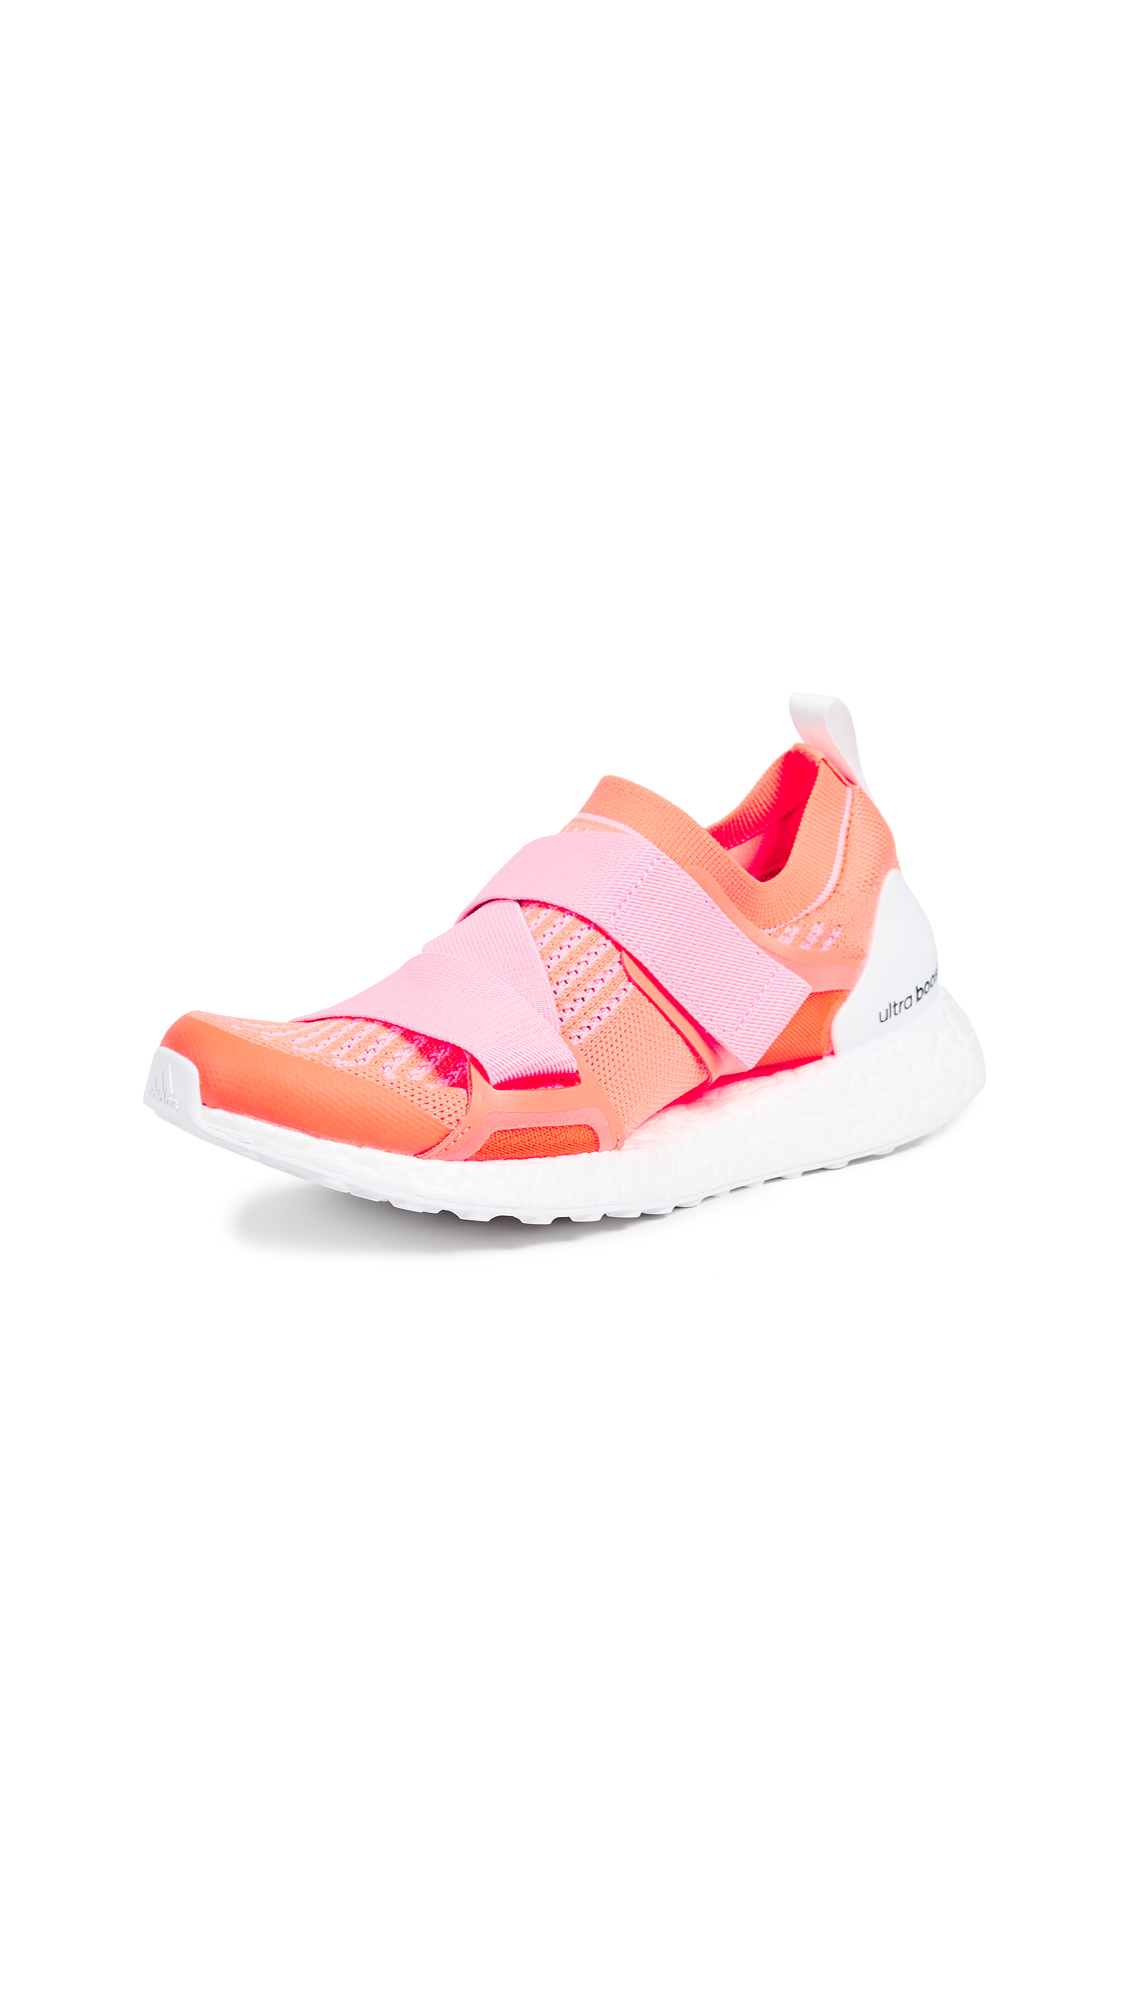 adidas by Stella McCartney UltraBOOST X Sneakers - Glow Orange/Hyper Pop/Black